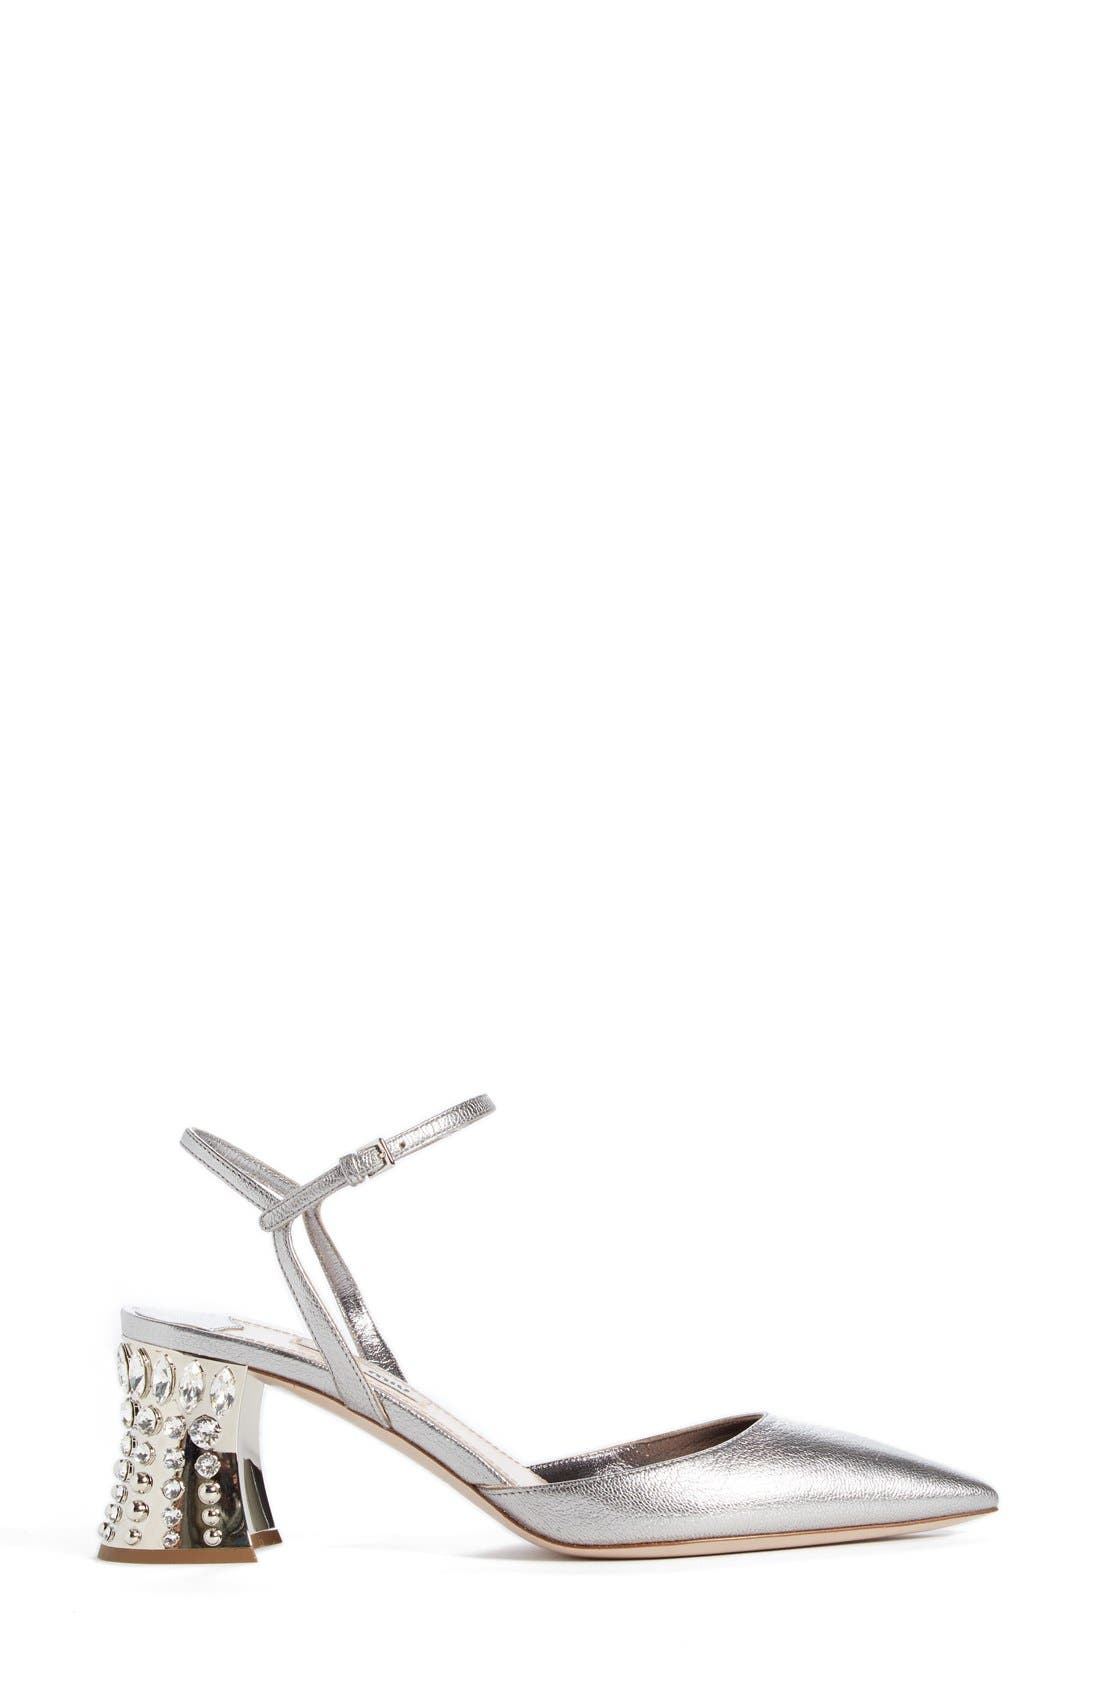 Jeweled Heel Ankle Strap Pump,                             Alternate thumbnail 4, color,                             Metallic Silver Leather